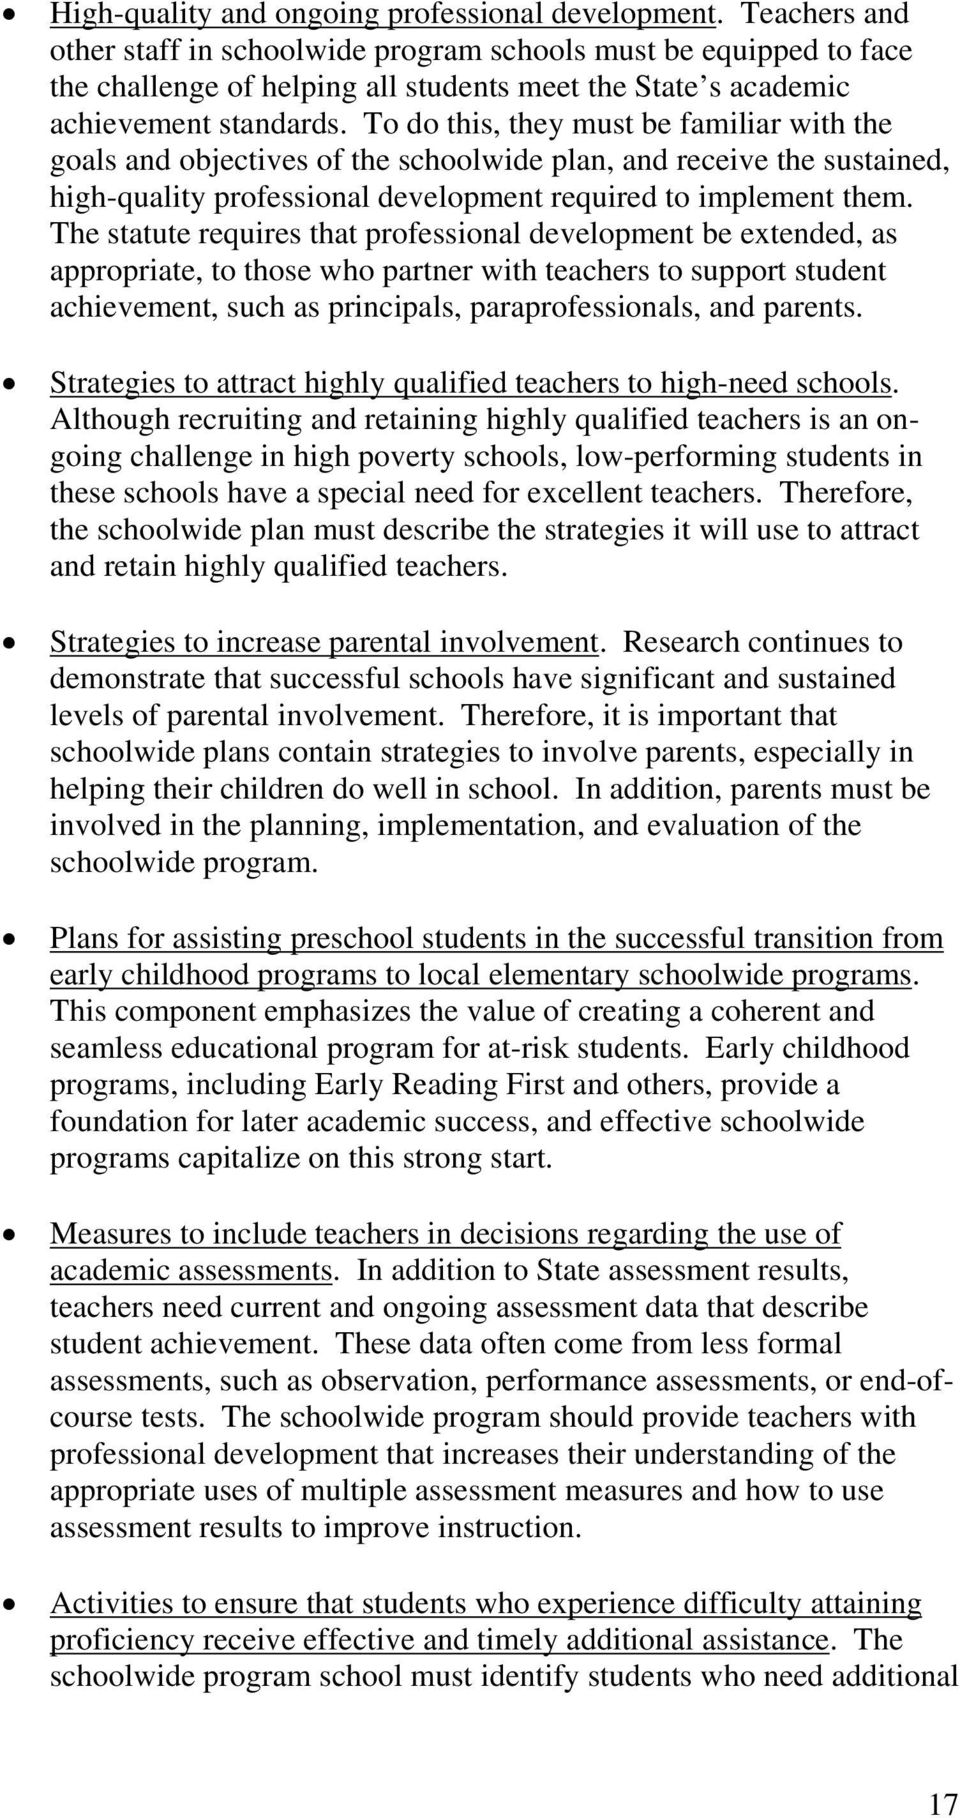 To do this, they must be familiar with the goals and objectives of the schoolwide plan, and receive the sustained, high-quality professional development required to implement them.